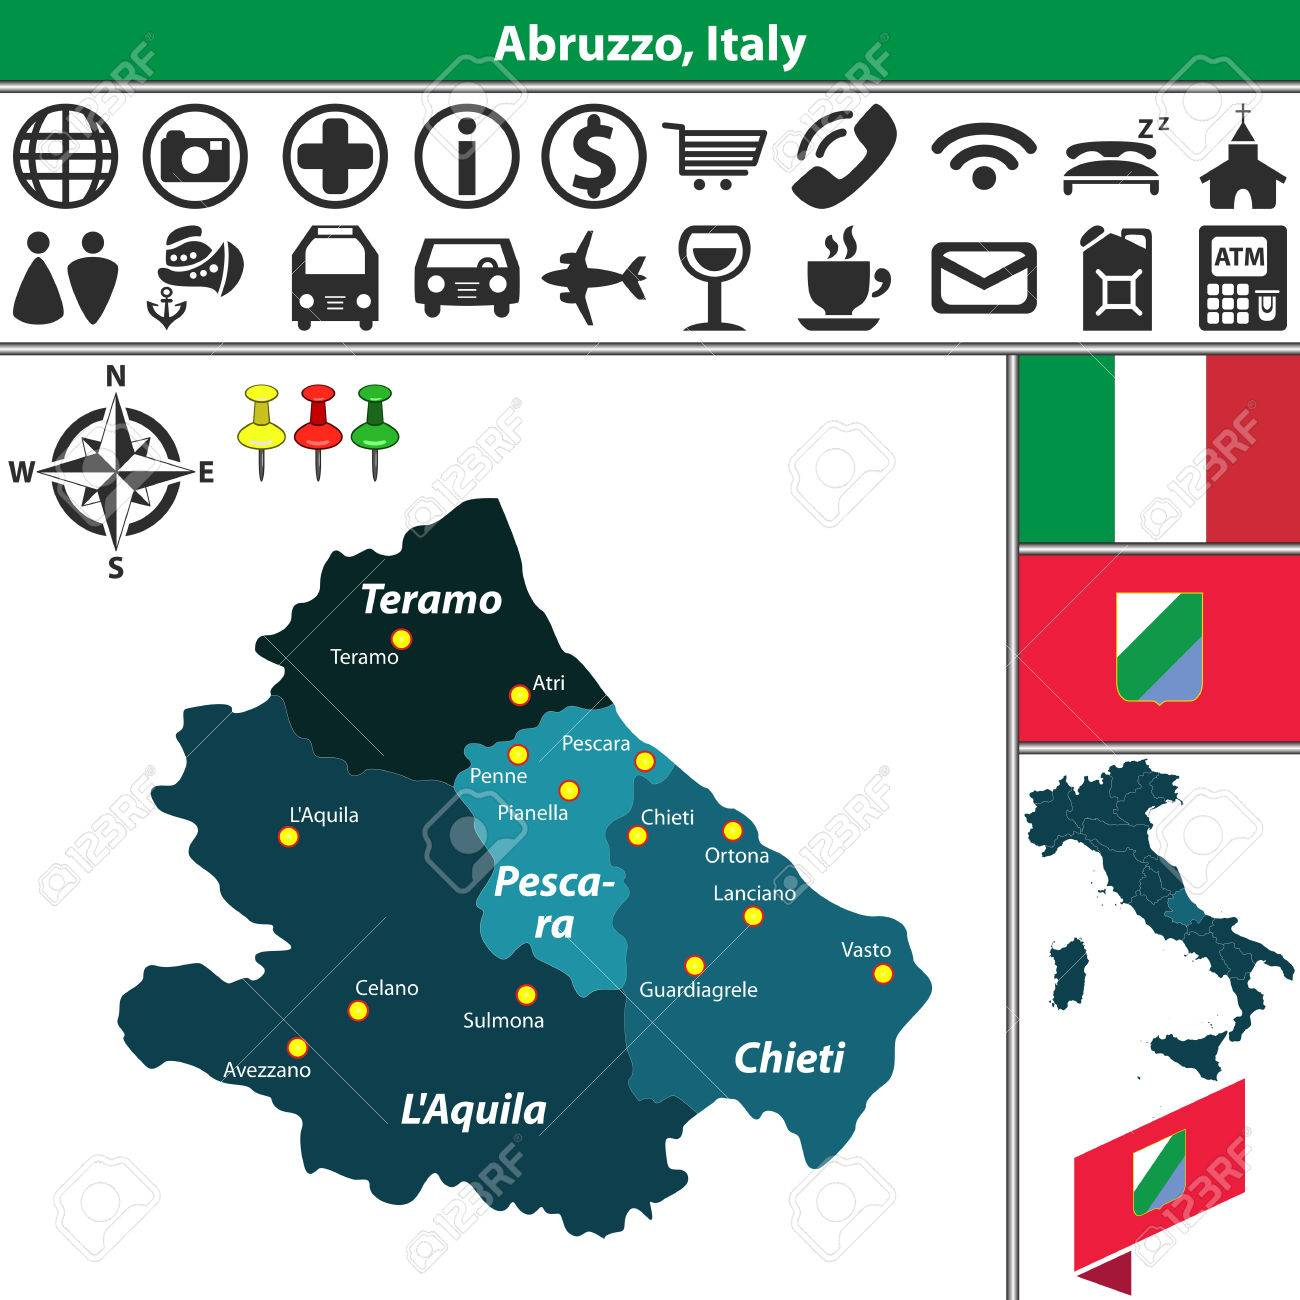 Map Of Italy Abruzzo Region.Vector Map Of Abruzzo With Regions And Location On Italy Map Royalty